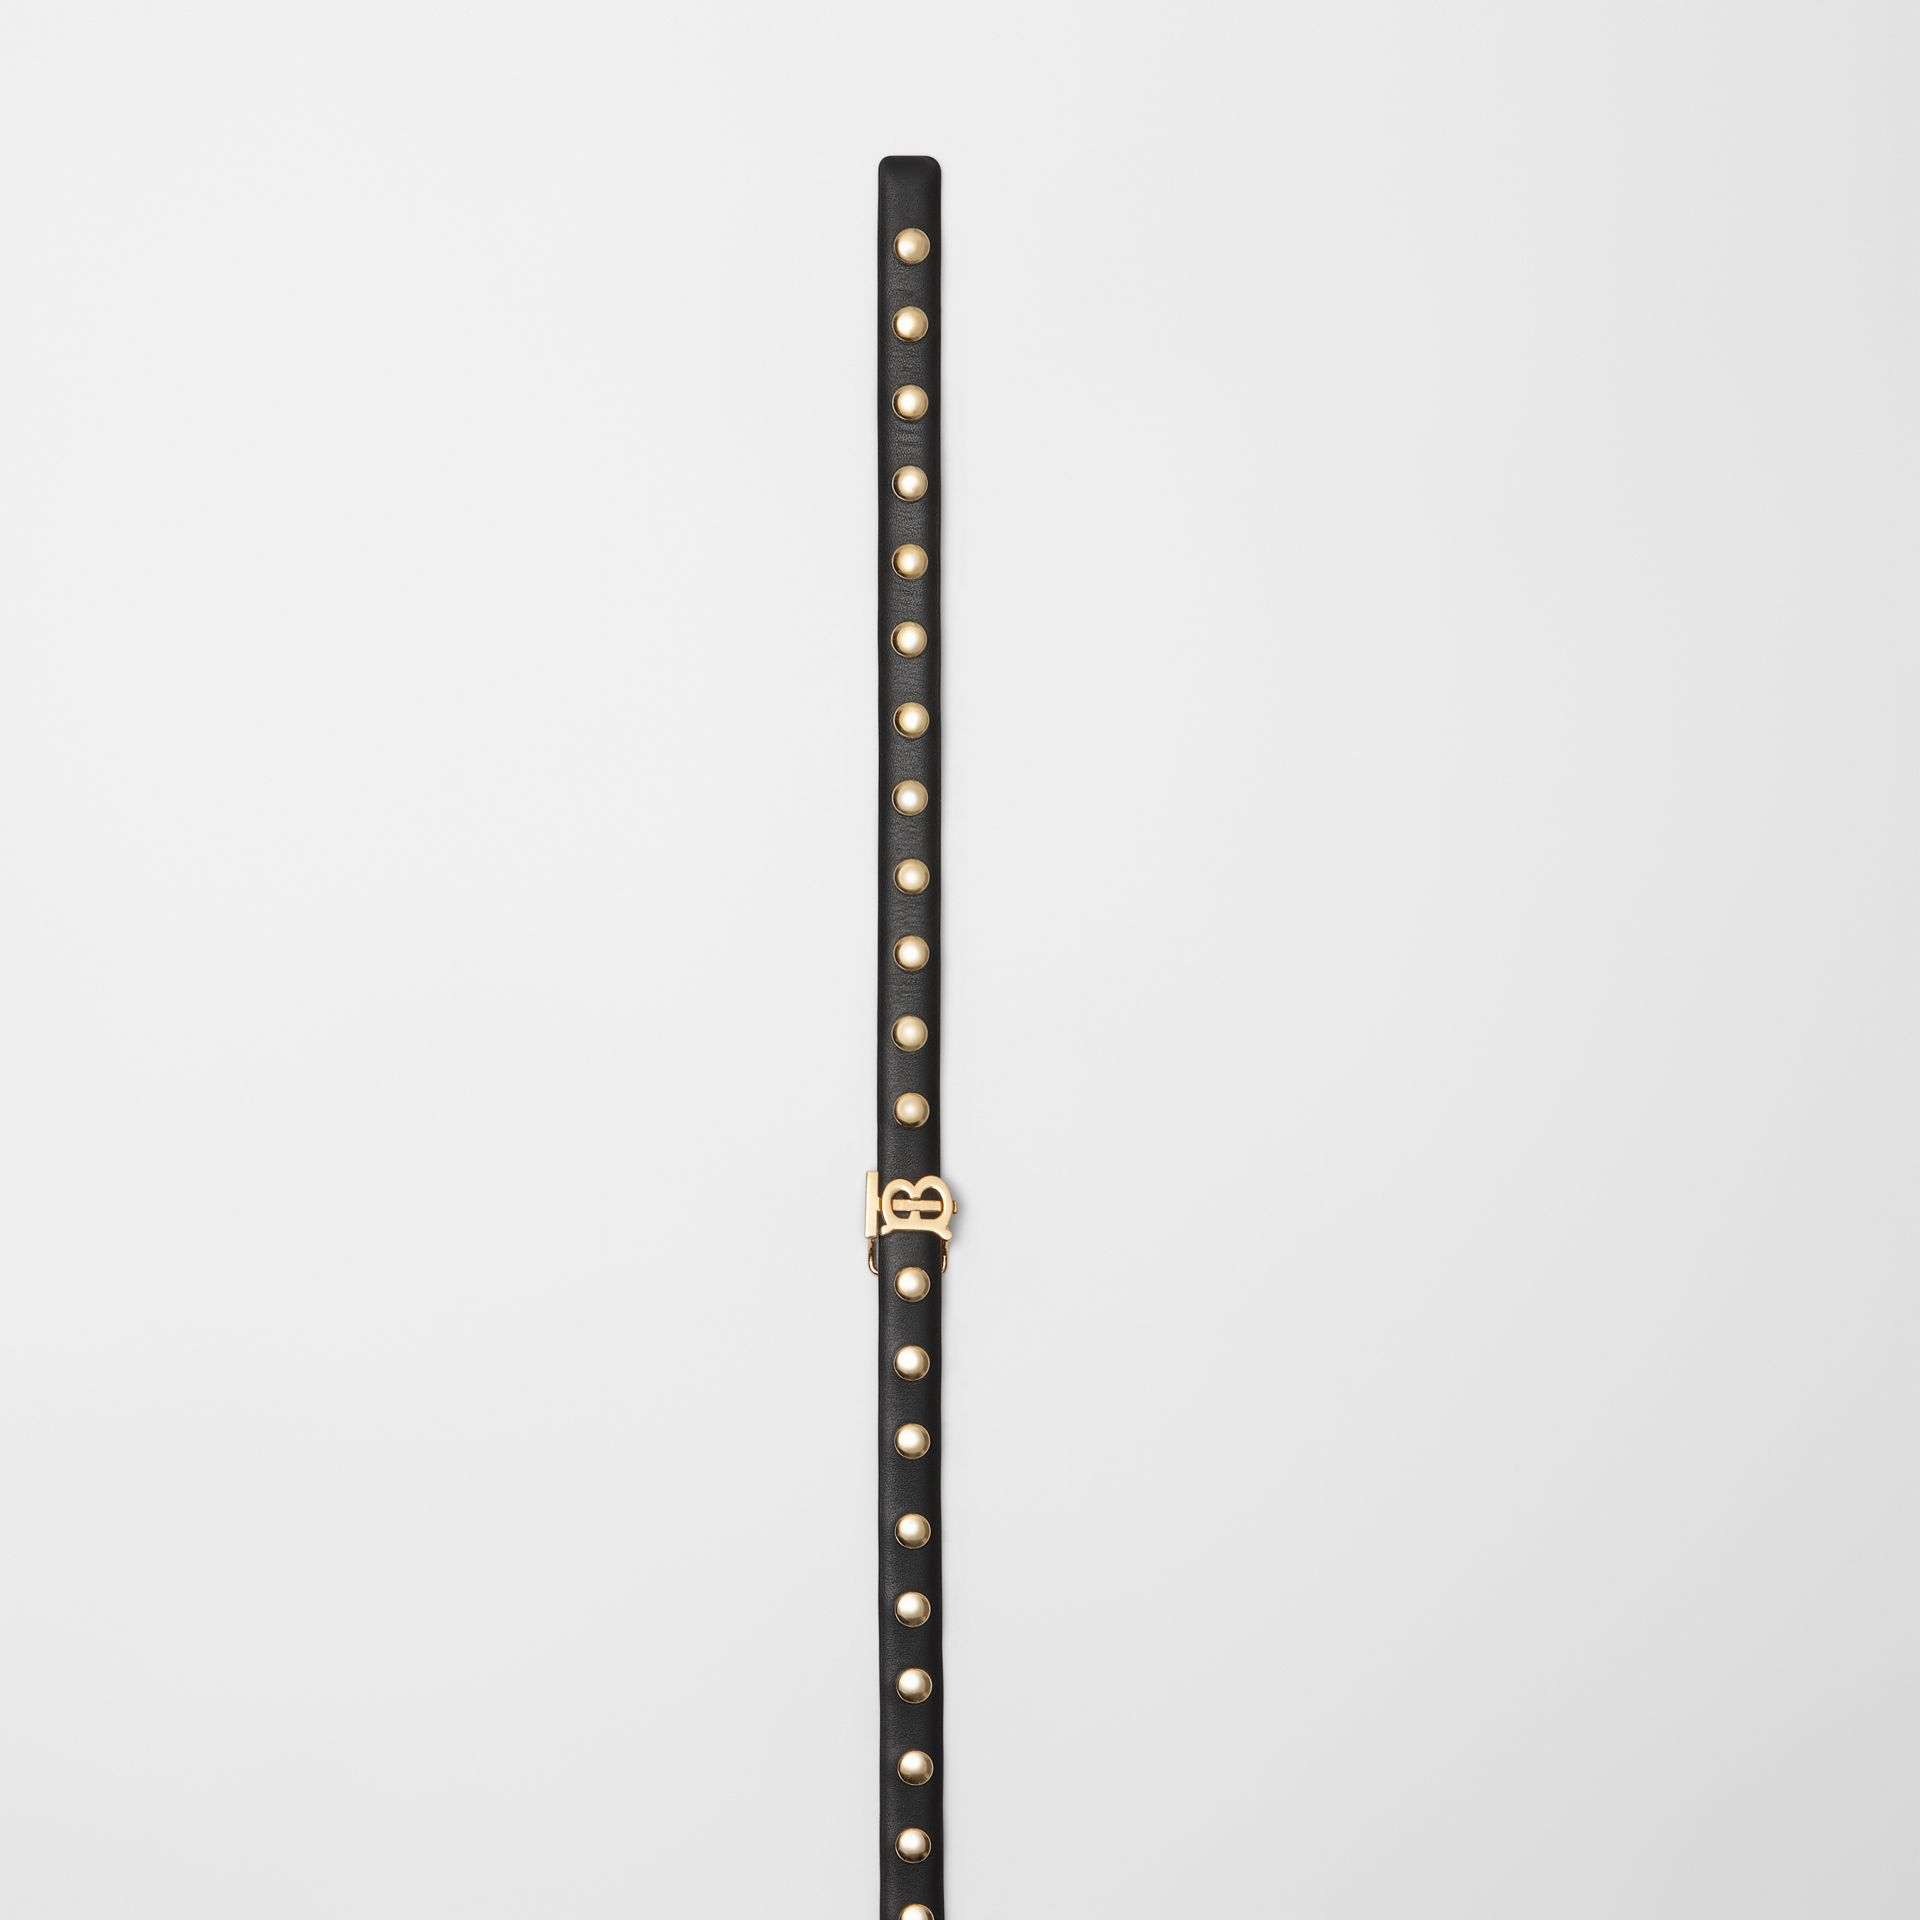 Monogram Motif Studded Leather Belt in Black/light Gold - Women | Burberry - gallery image 1